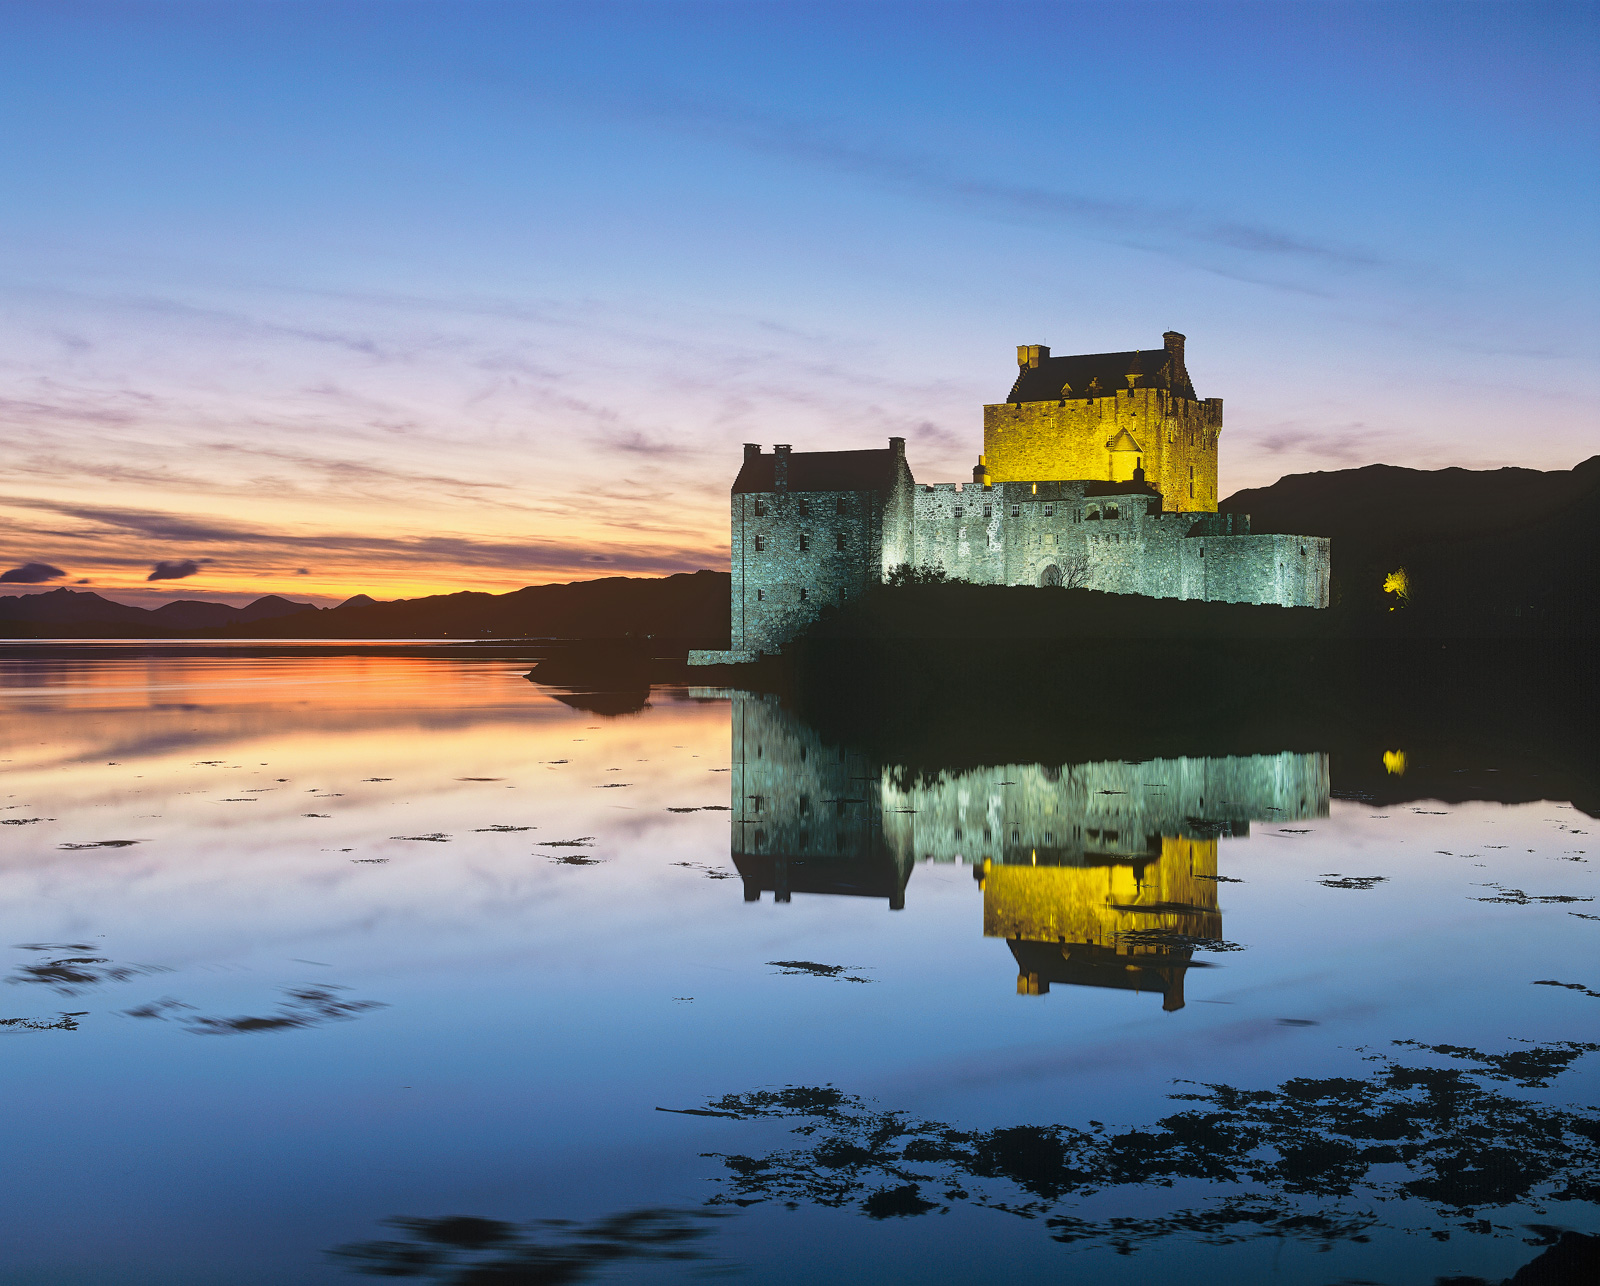 One of the most photographed castles in Scotland but never have I seen it so perfectly mirrored with such a gorgeous sky behind...